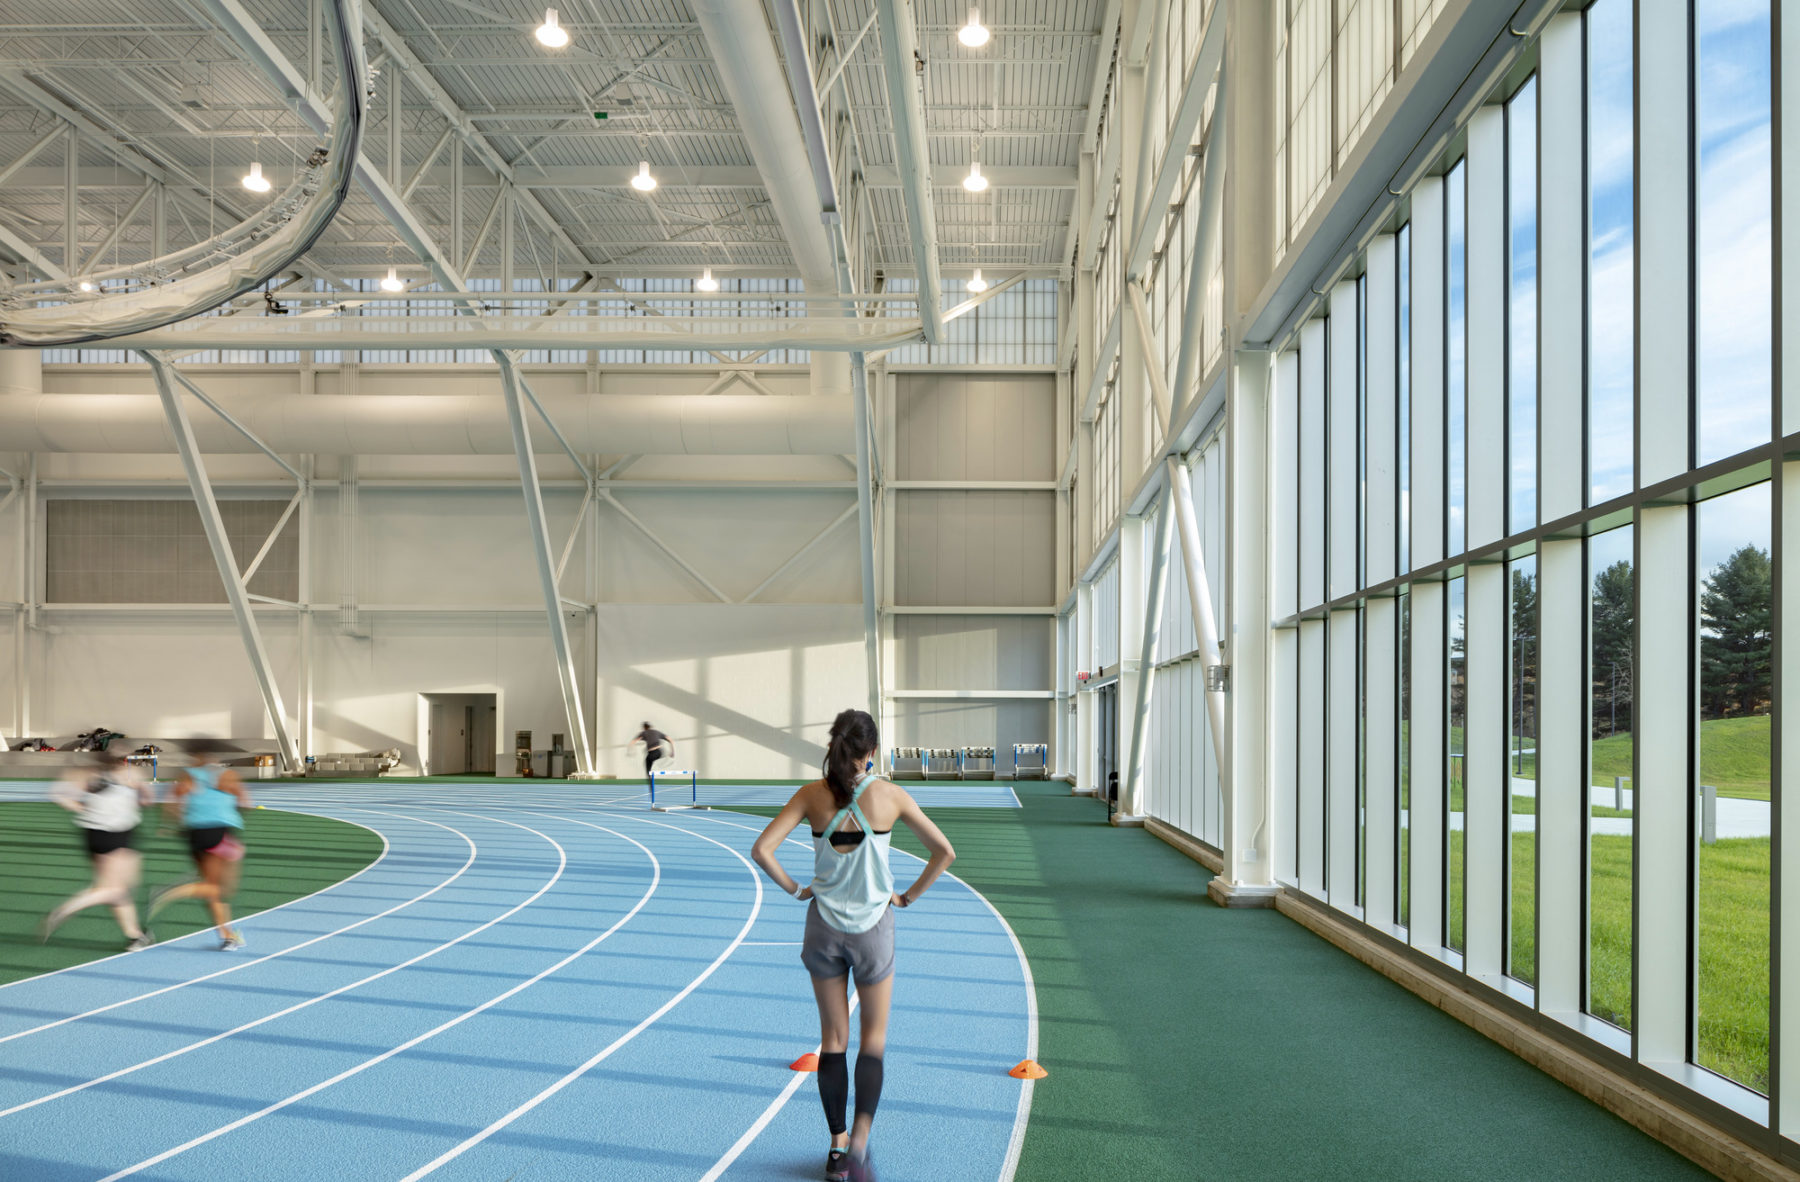 interior photo of field house. Runners move along the track